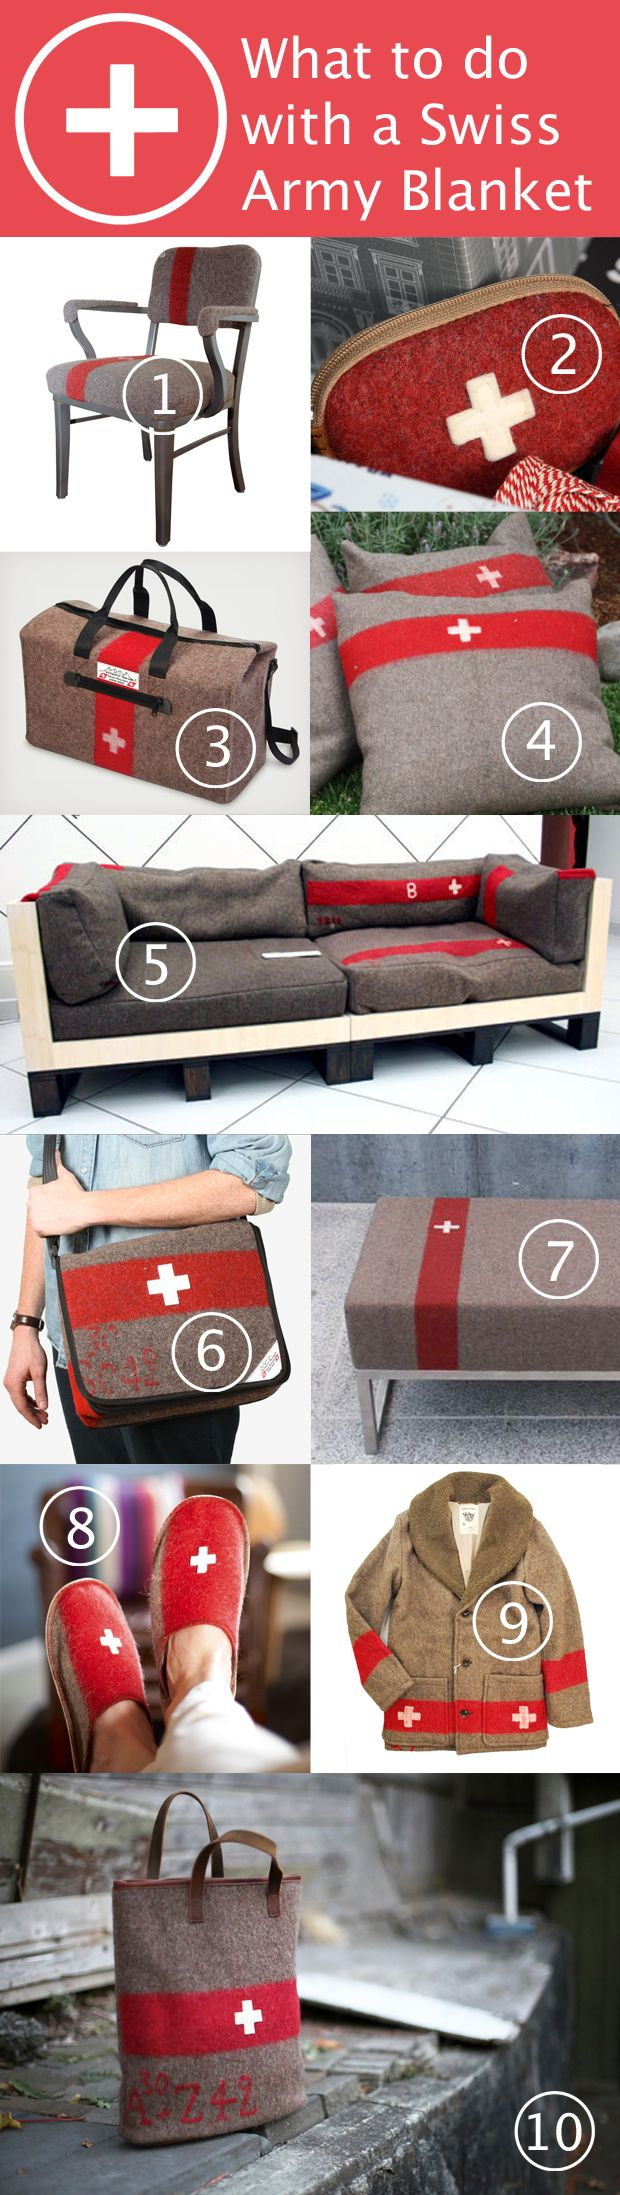 What to do with a Swiss Army blanket | HandsOccupied.com